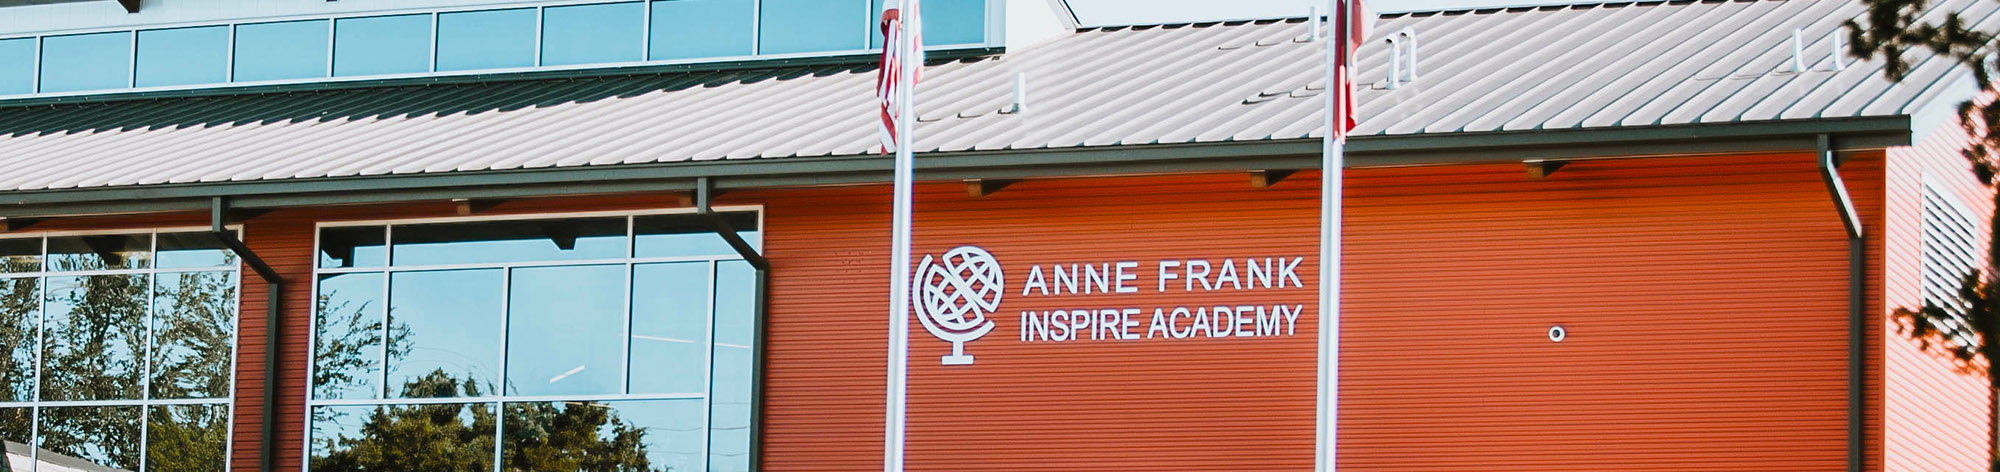 Outside view of Anne Frank IA school building